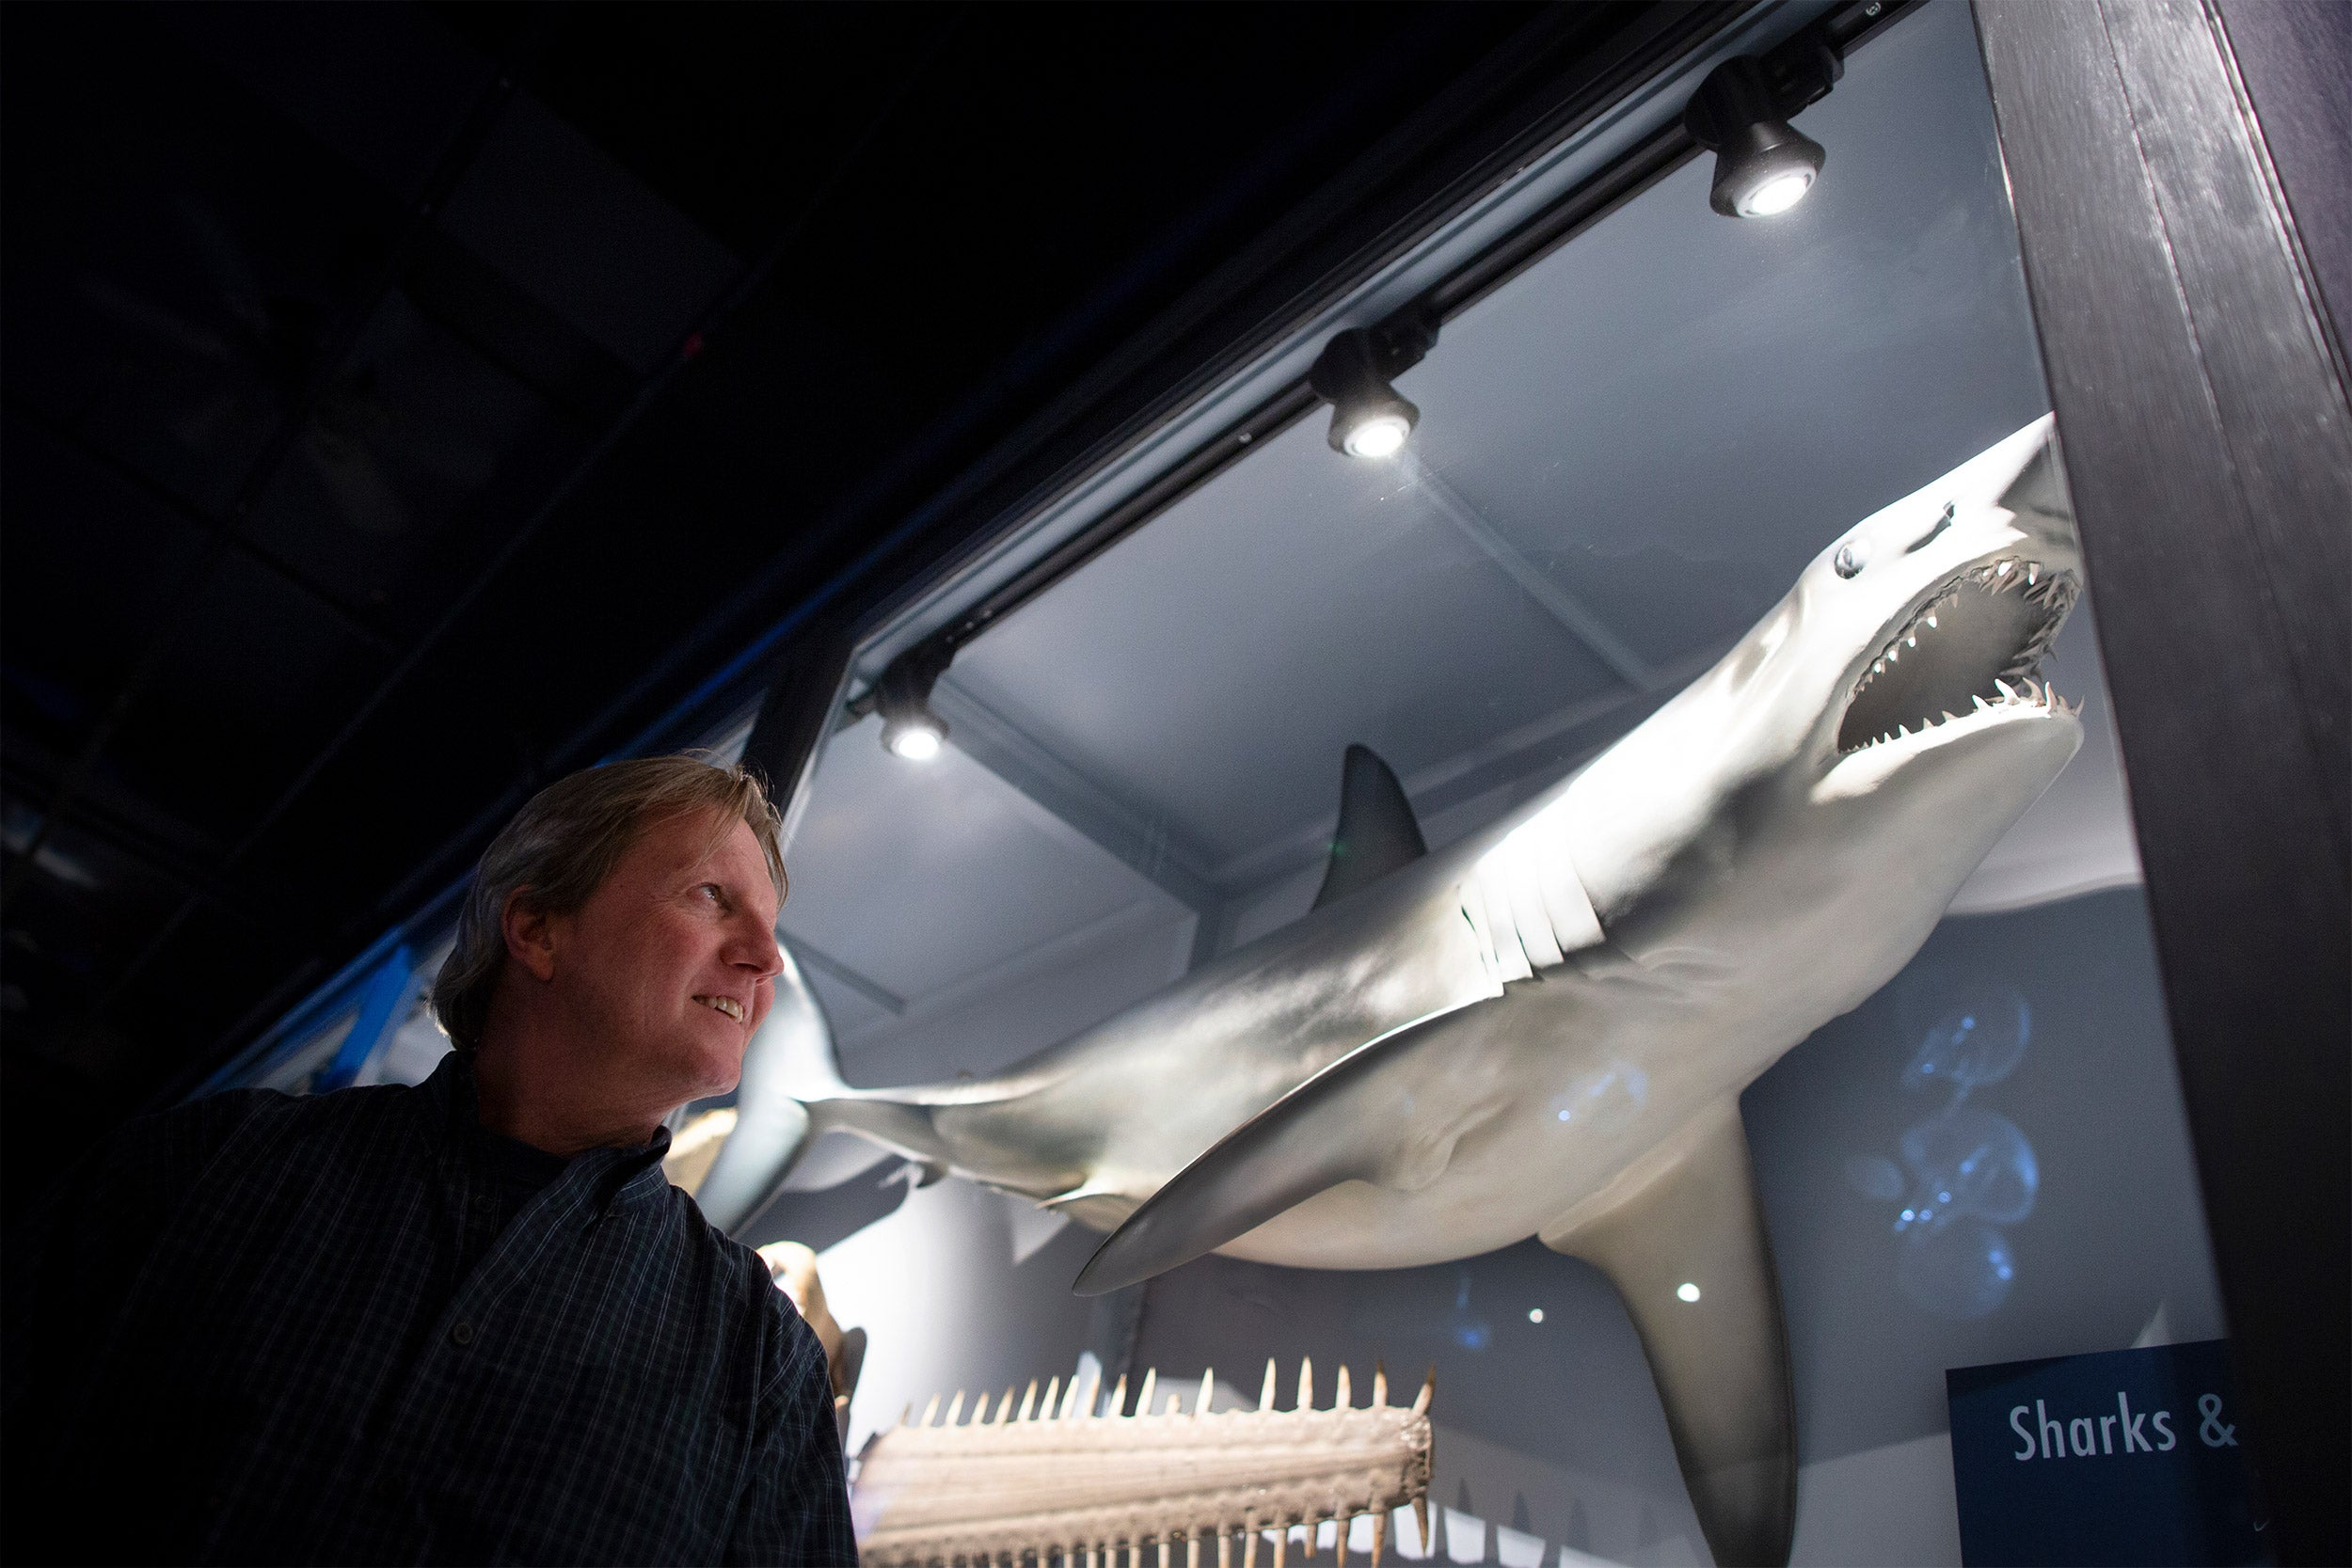 Greg Skomal stands in front of a shark in a glass case